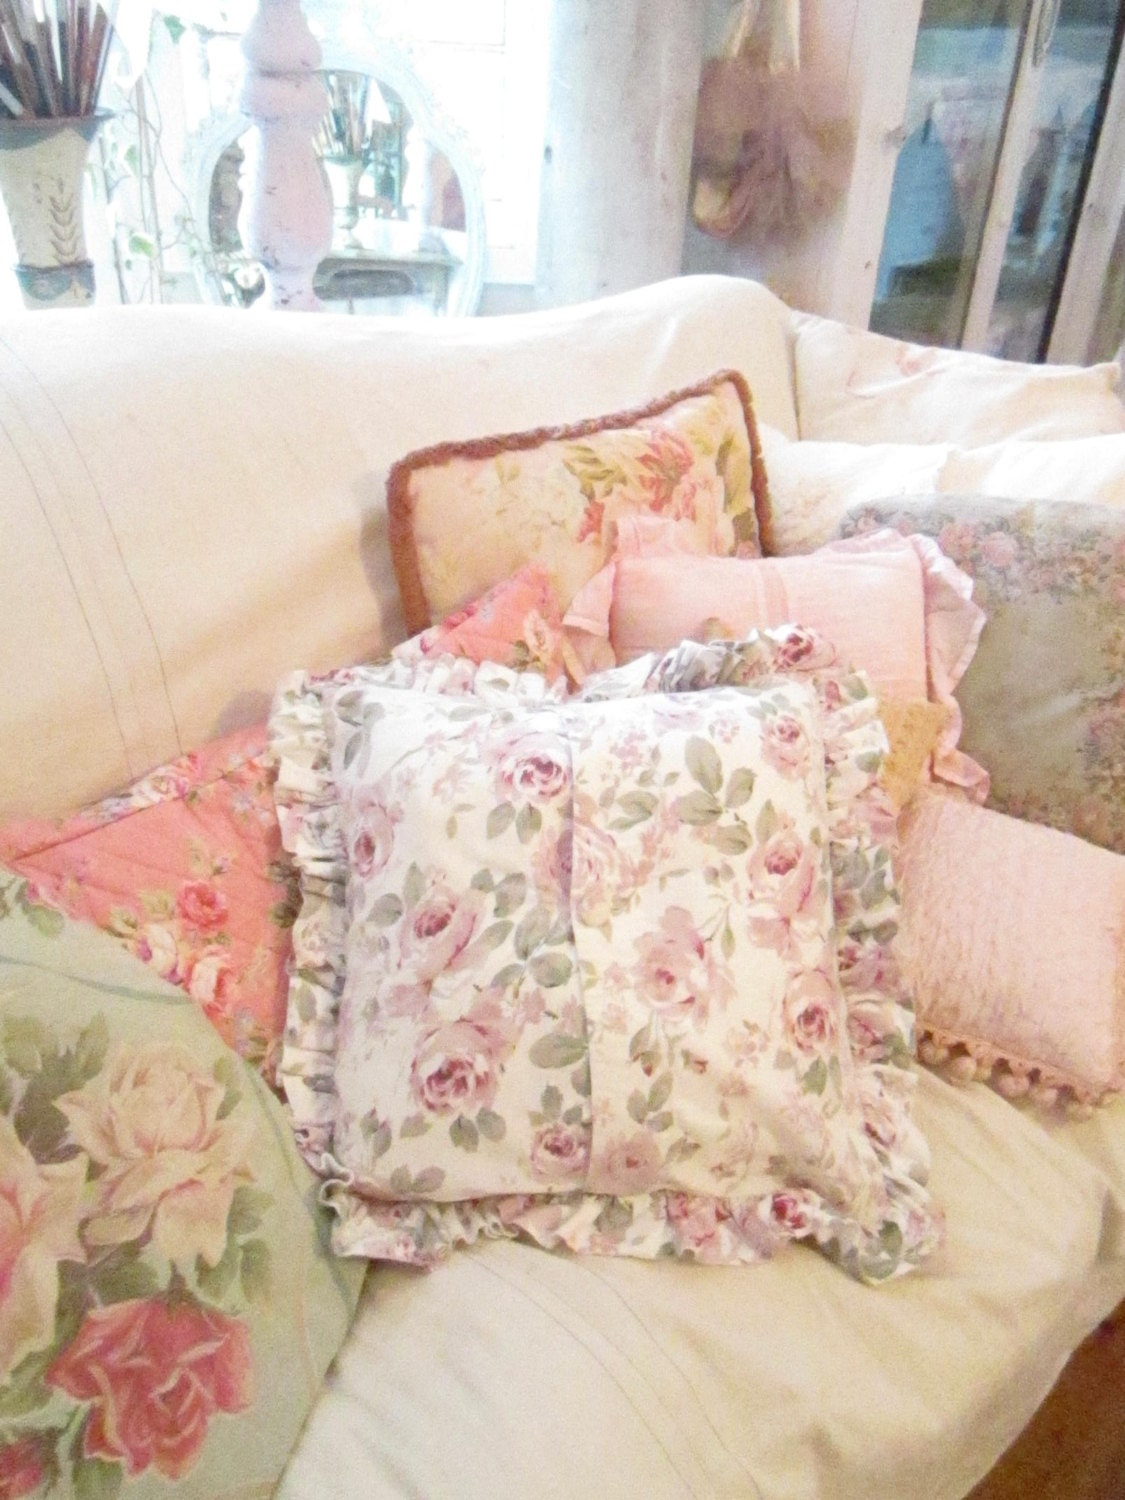 Shabby Chic Ruffle Pillows : pillow with roses and ruffles shabby chic prairie cottage chic